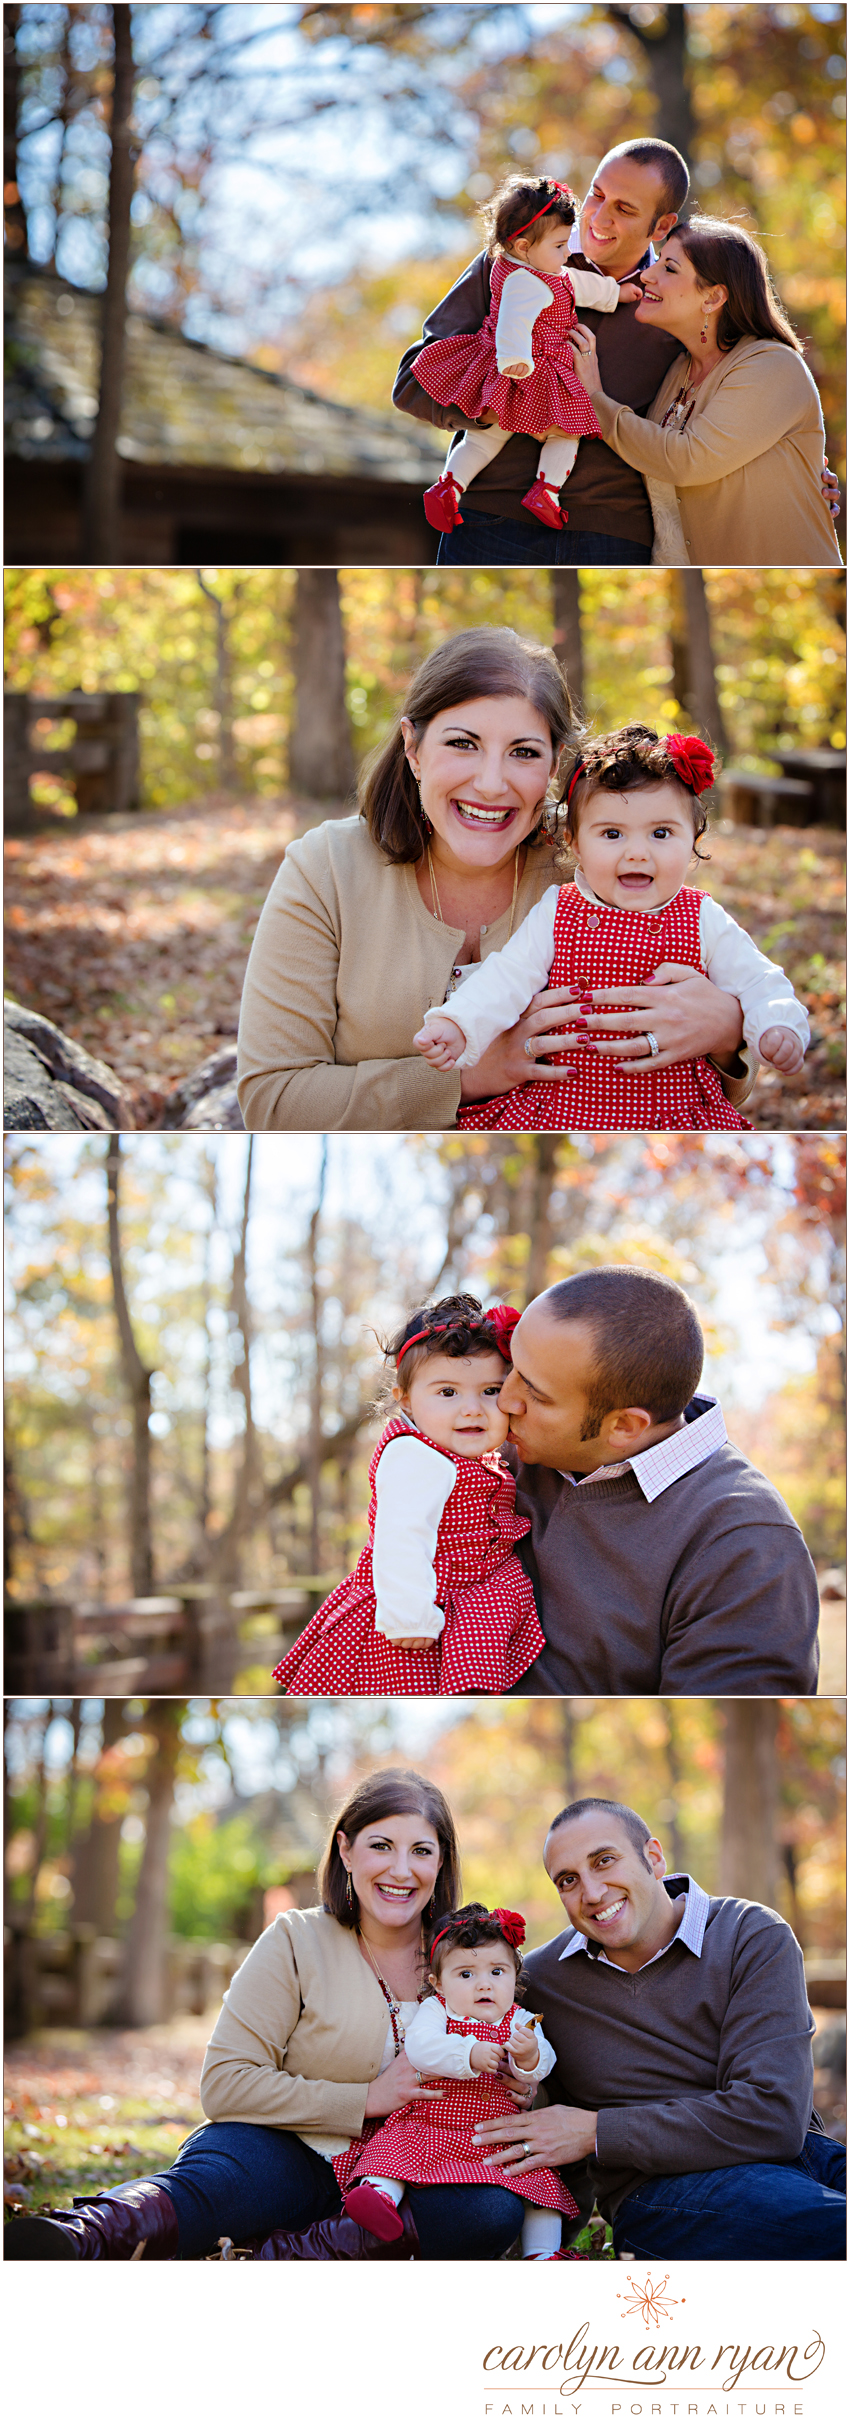 Charlotte, North Carolina Family and Child Photographer shares Fall family photographs